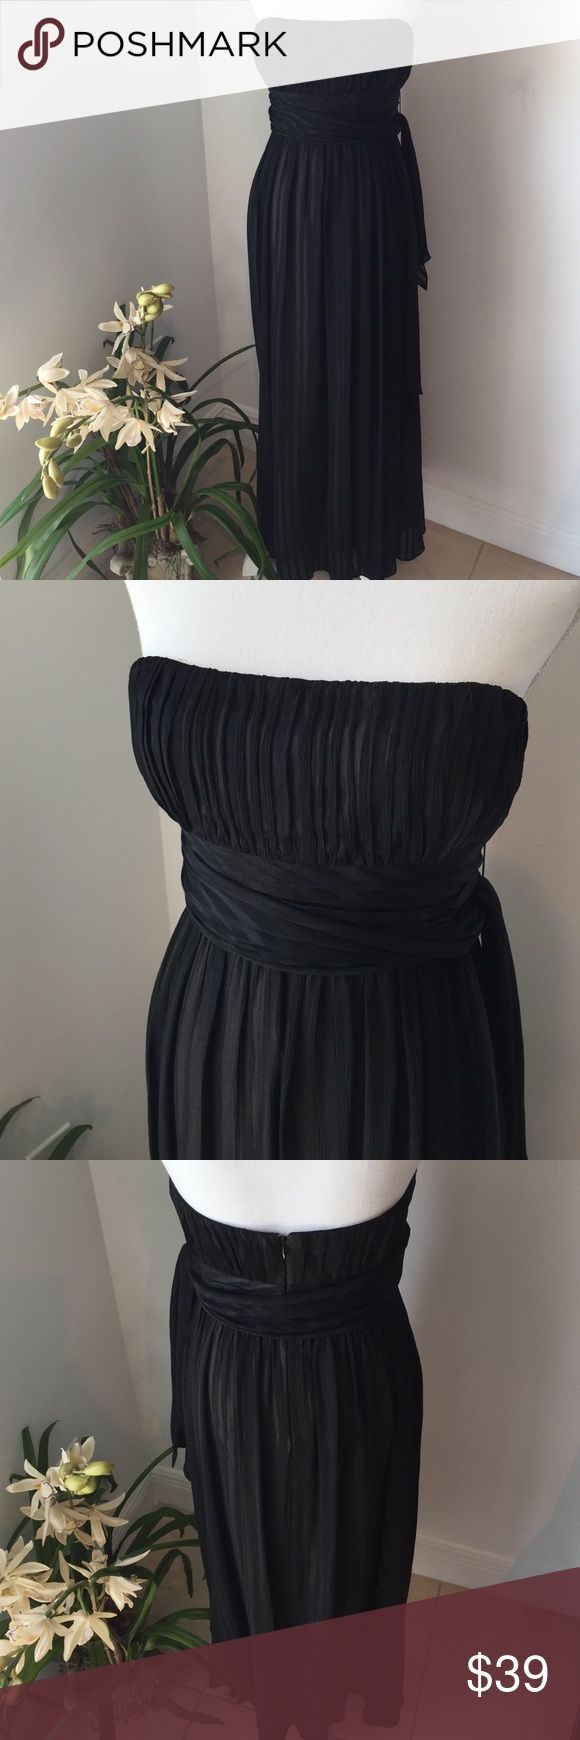 """Gorgeous floor length strapless black dress sz 10P Gorgeous sheer black dress with beige lining. The outside has a very subtle sheer stripe through it which allow the beige to be visible.  Strapless bandeau top with heavy rubber interior finish. Measures 18"""" at bandeau top, 5 inch bandeau band, 15 inches at empire waist, a line skirt so no hip measurements and 47 inches (approximate) from bandeau top underarm to exterior hem. Size 10 Petite BCBGMaxAzria Dresses Maxi"""